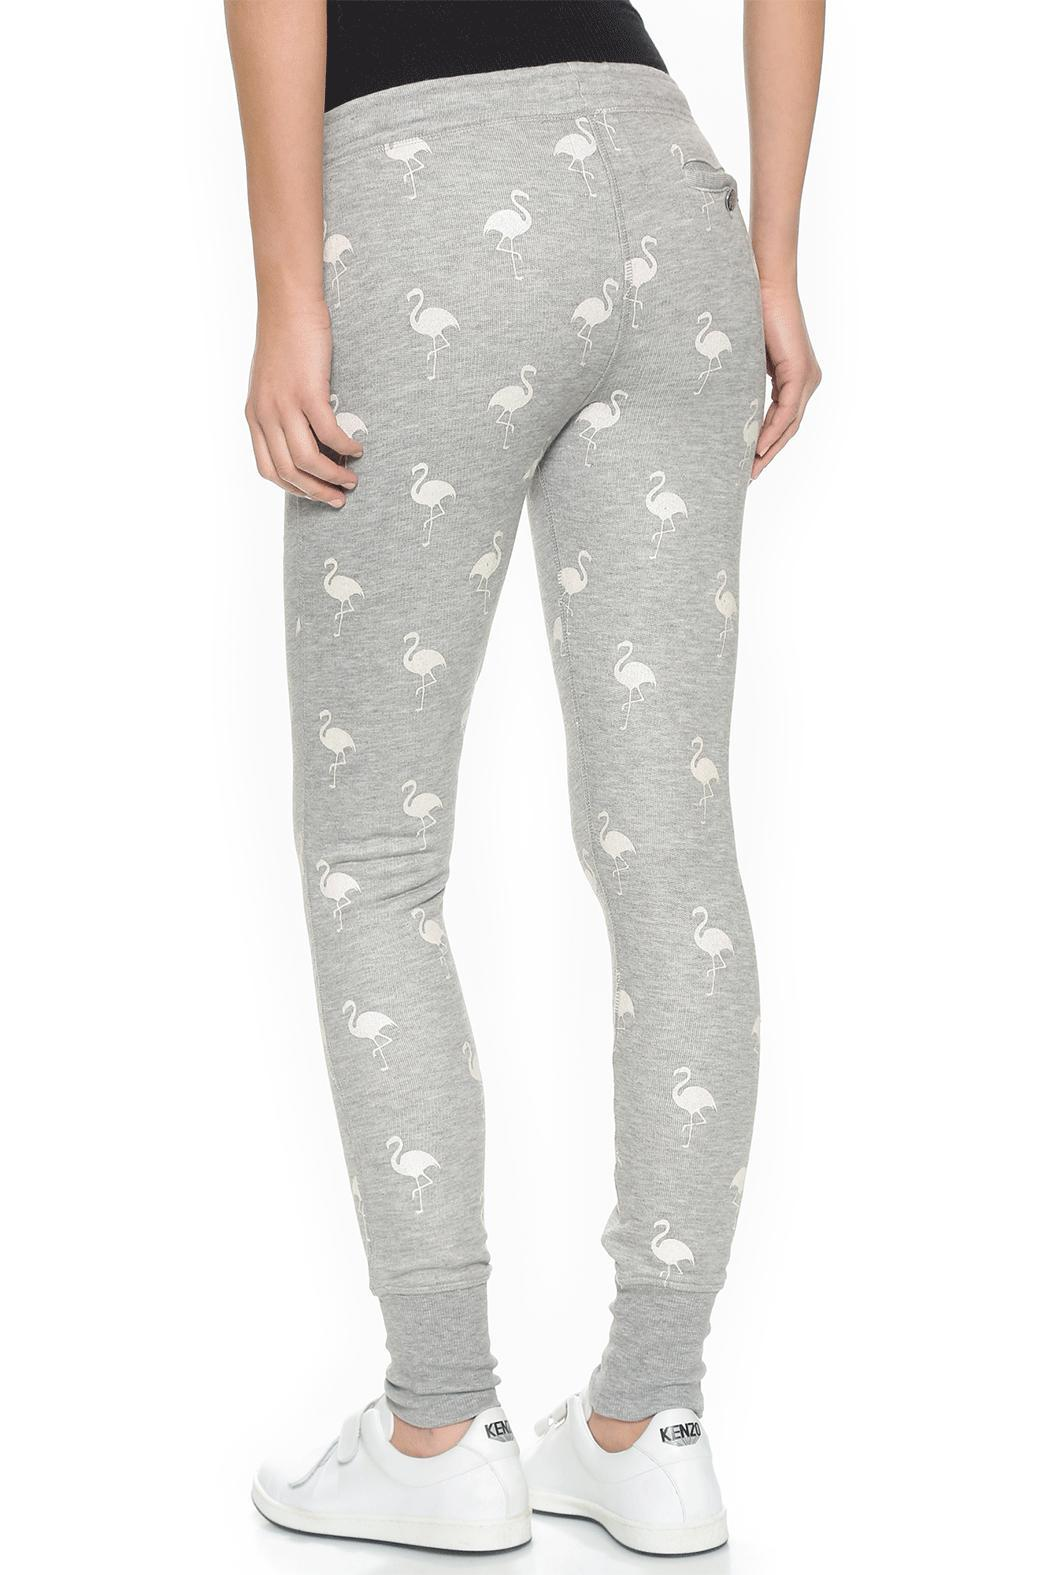 Zoe Karssen Flamingo Grey Pants - Front Full Image